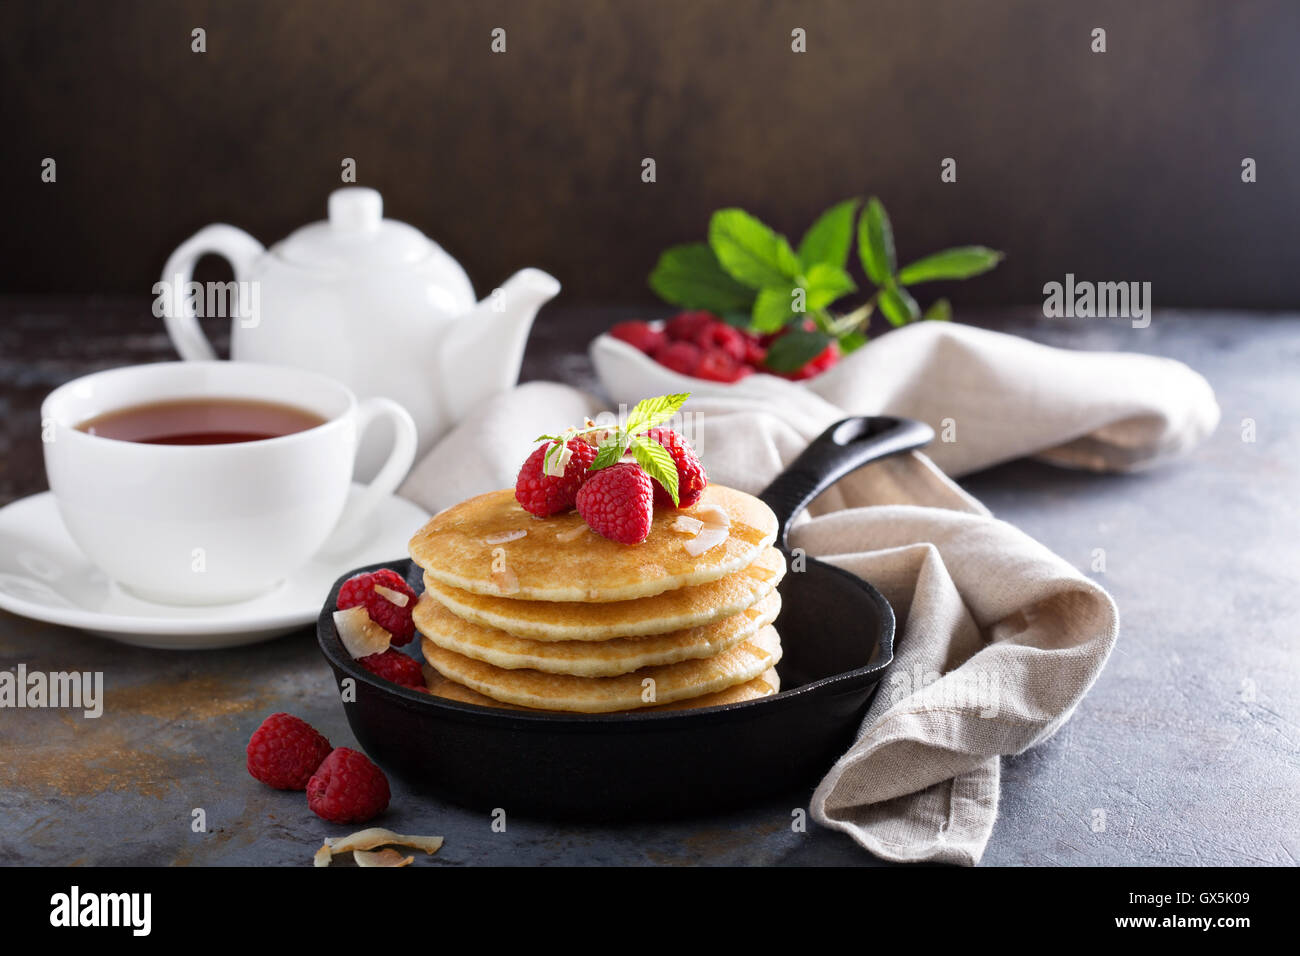 Stack of fluffy buttermilk pancakes - Stock Image